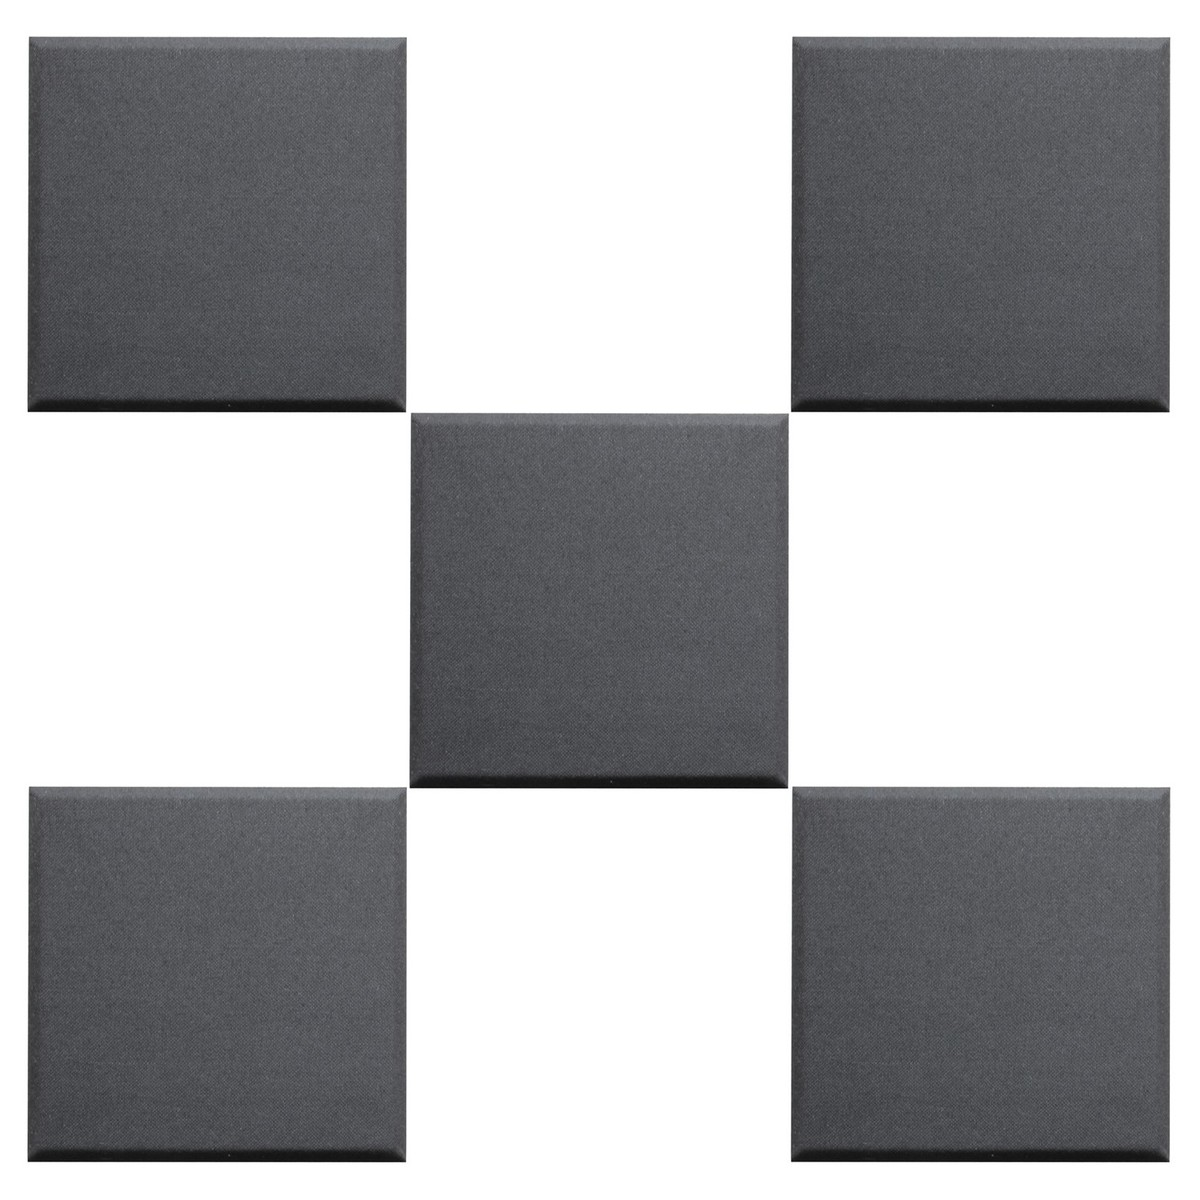 Click to view product details and reviews for Primacoustic 1 Scatter Block With Beveled Edge In Black Pack Of 24.